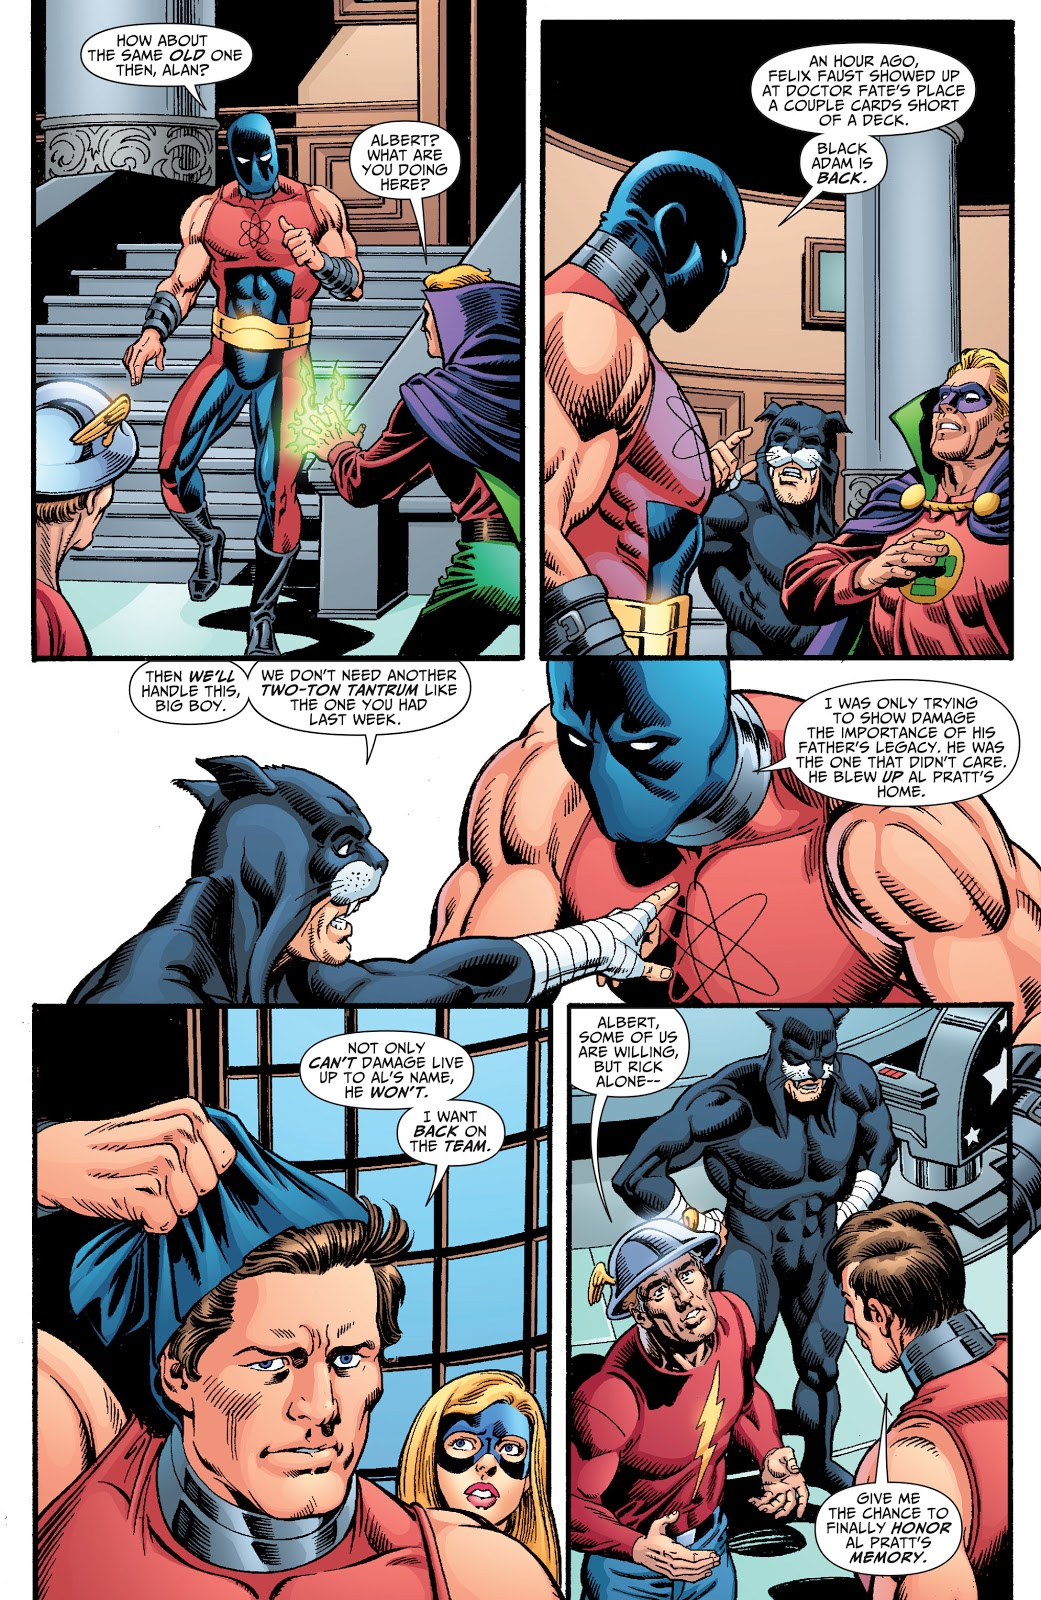 In 'Justice Society Of America' (2009) #23, Atom Smasher wants to rejoin the JSA.